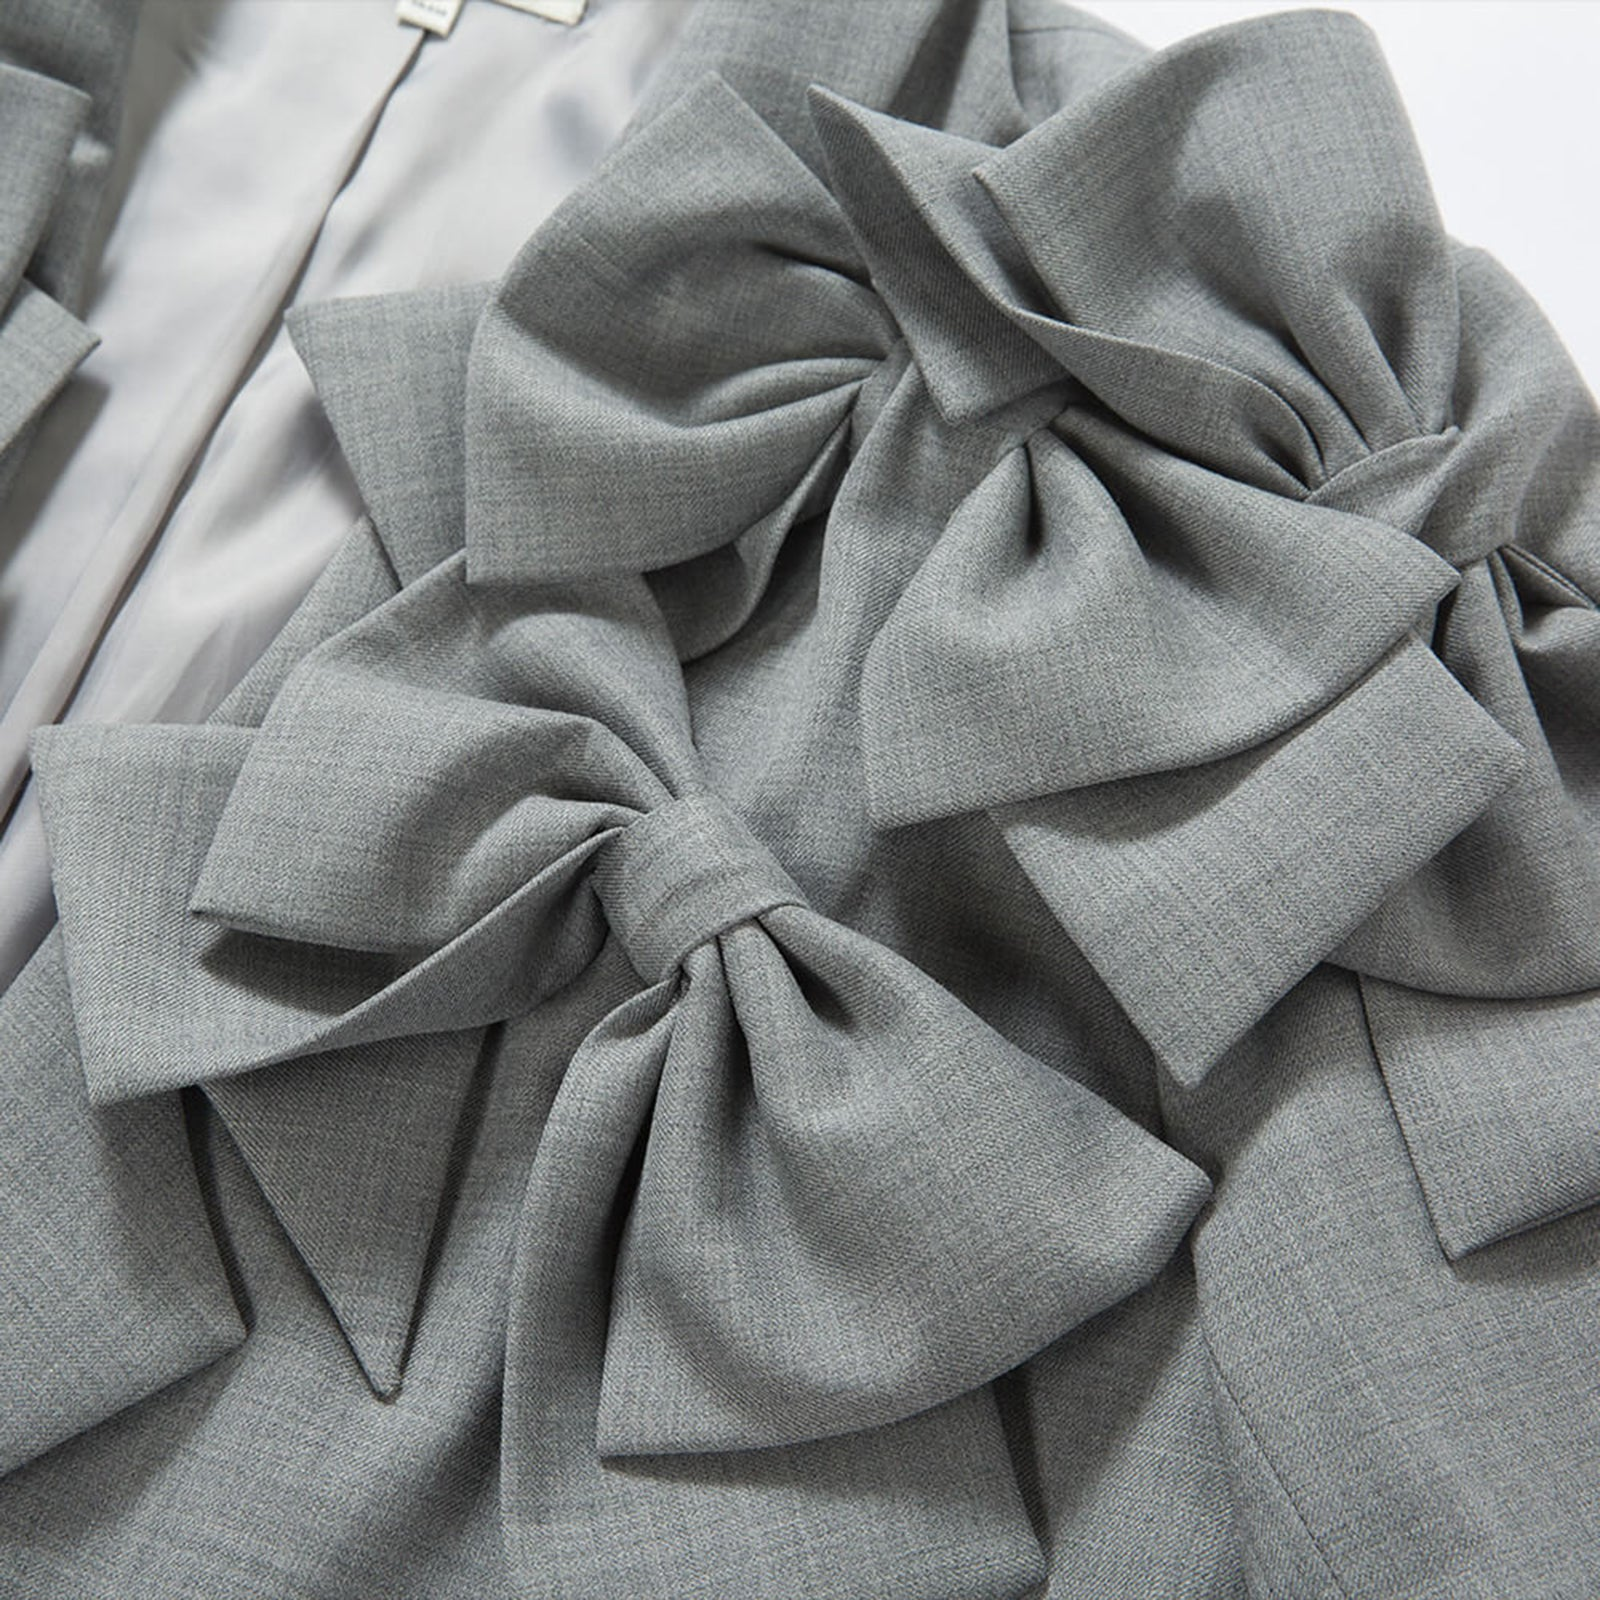 Grey Suit Jacket with Bows